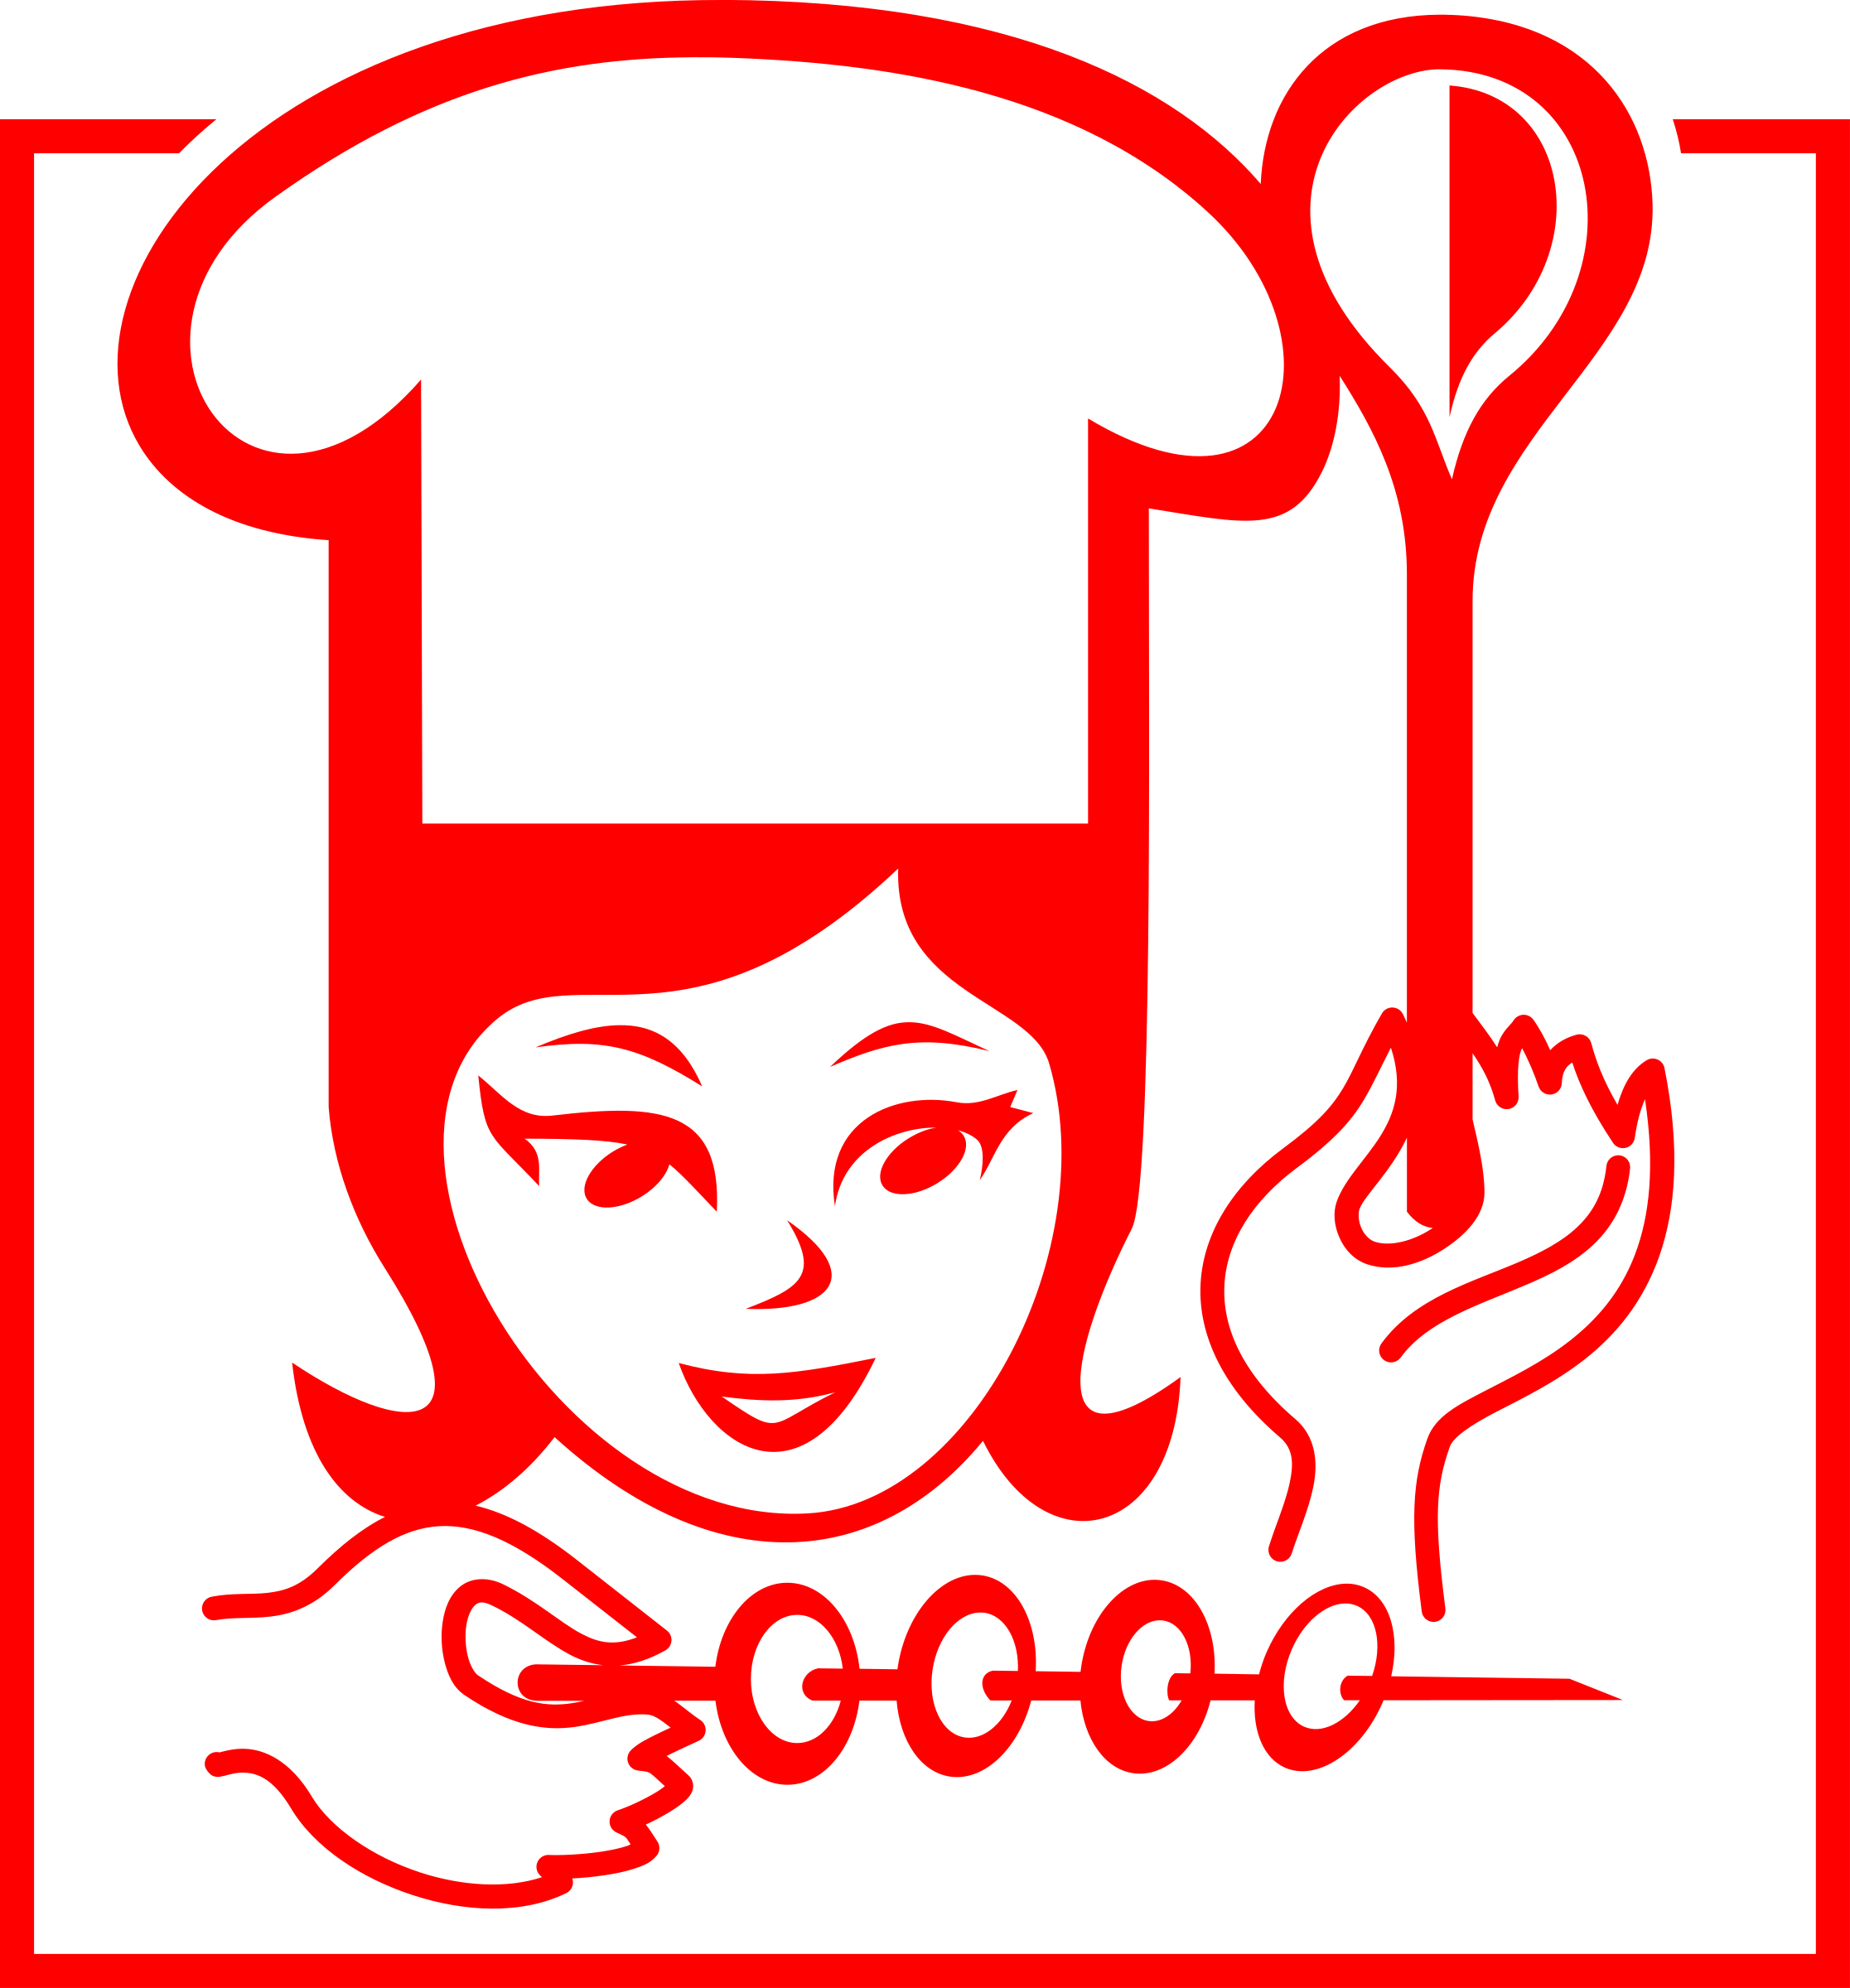 Lady-Cook by rones